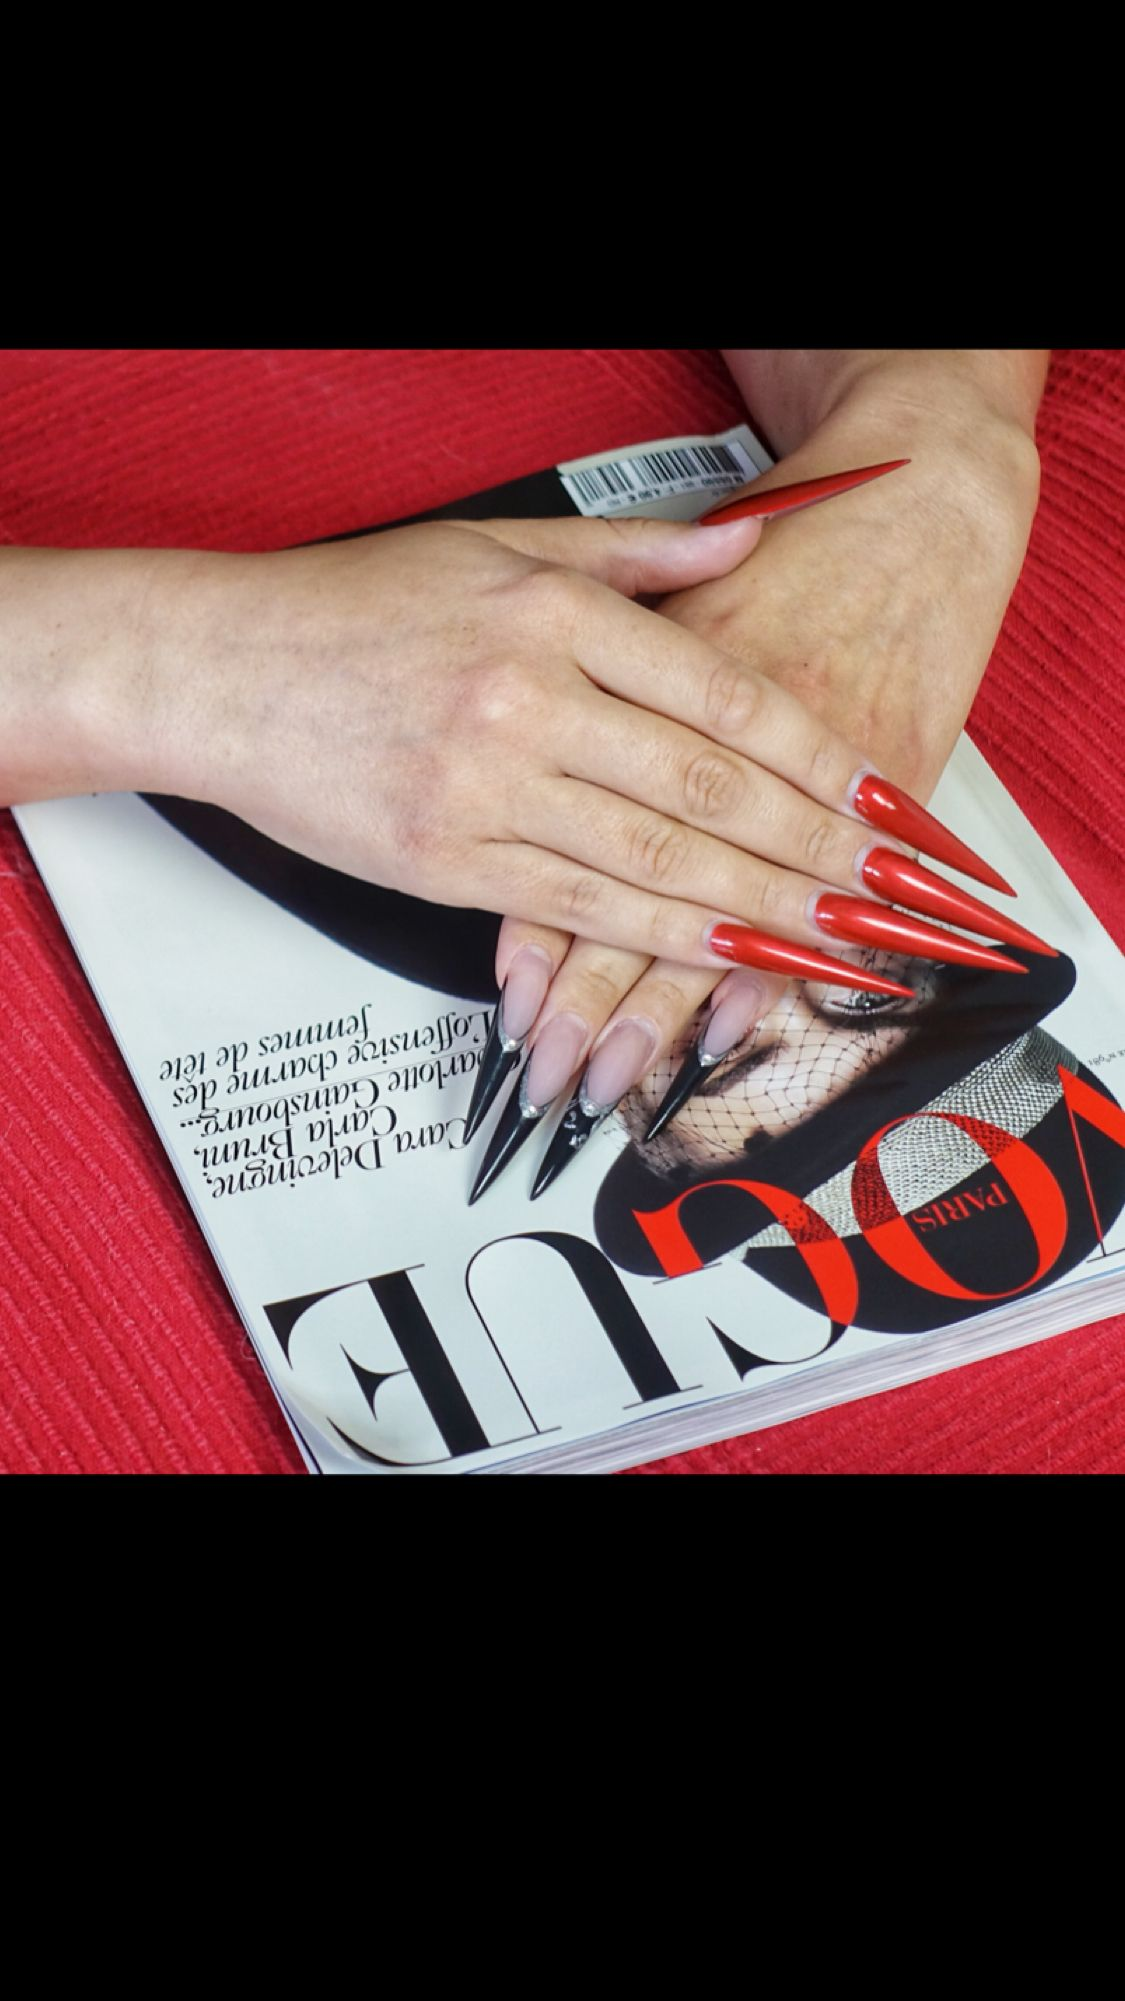 EXTRA AF long stiletto nails red nails #manicure #inspo #flatlay ...